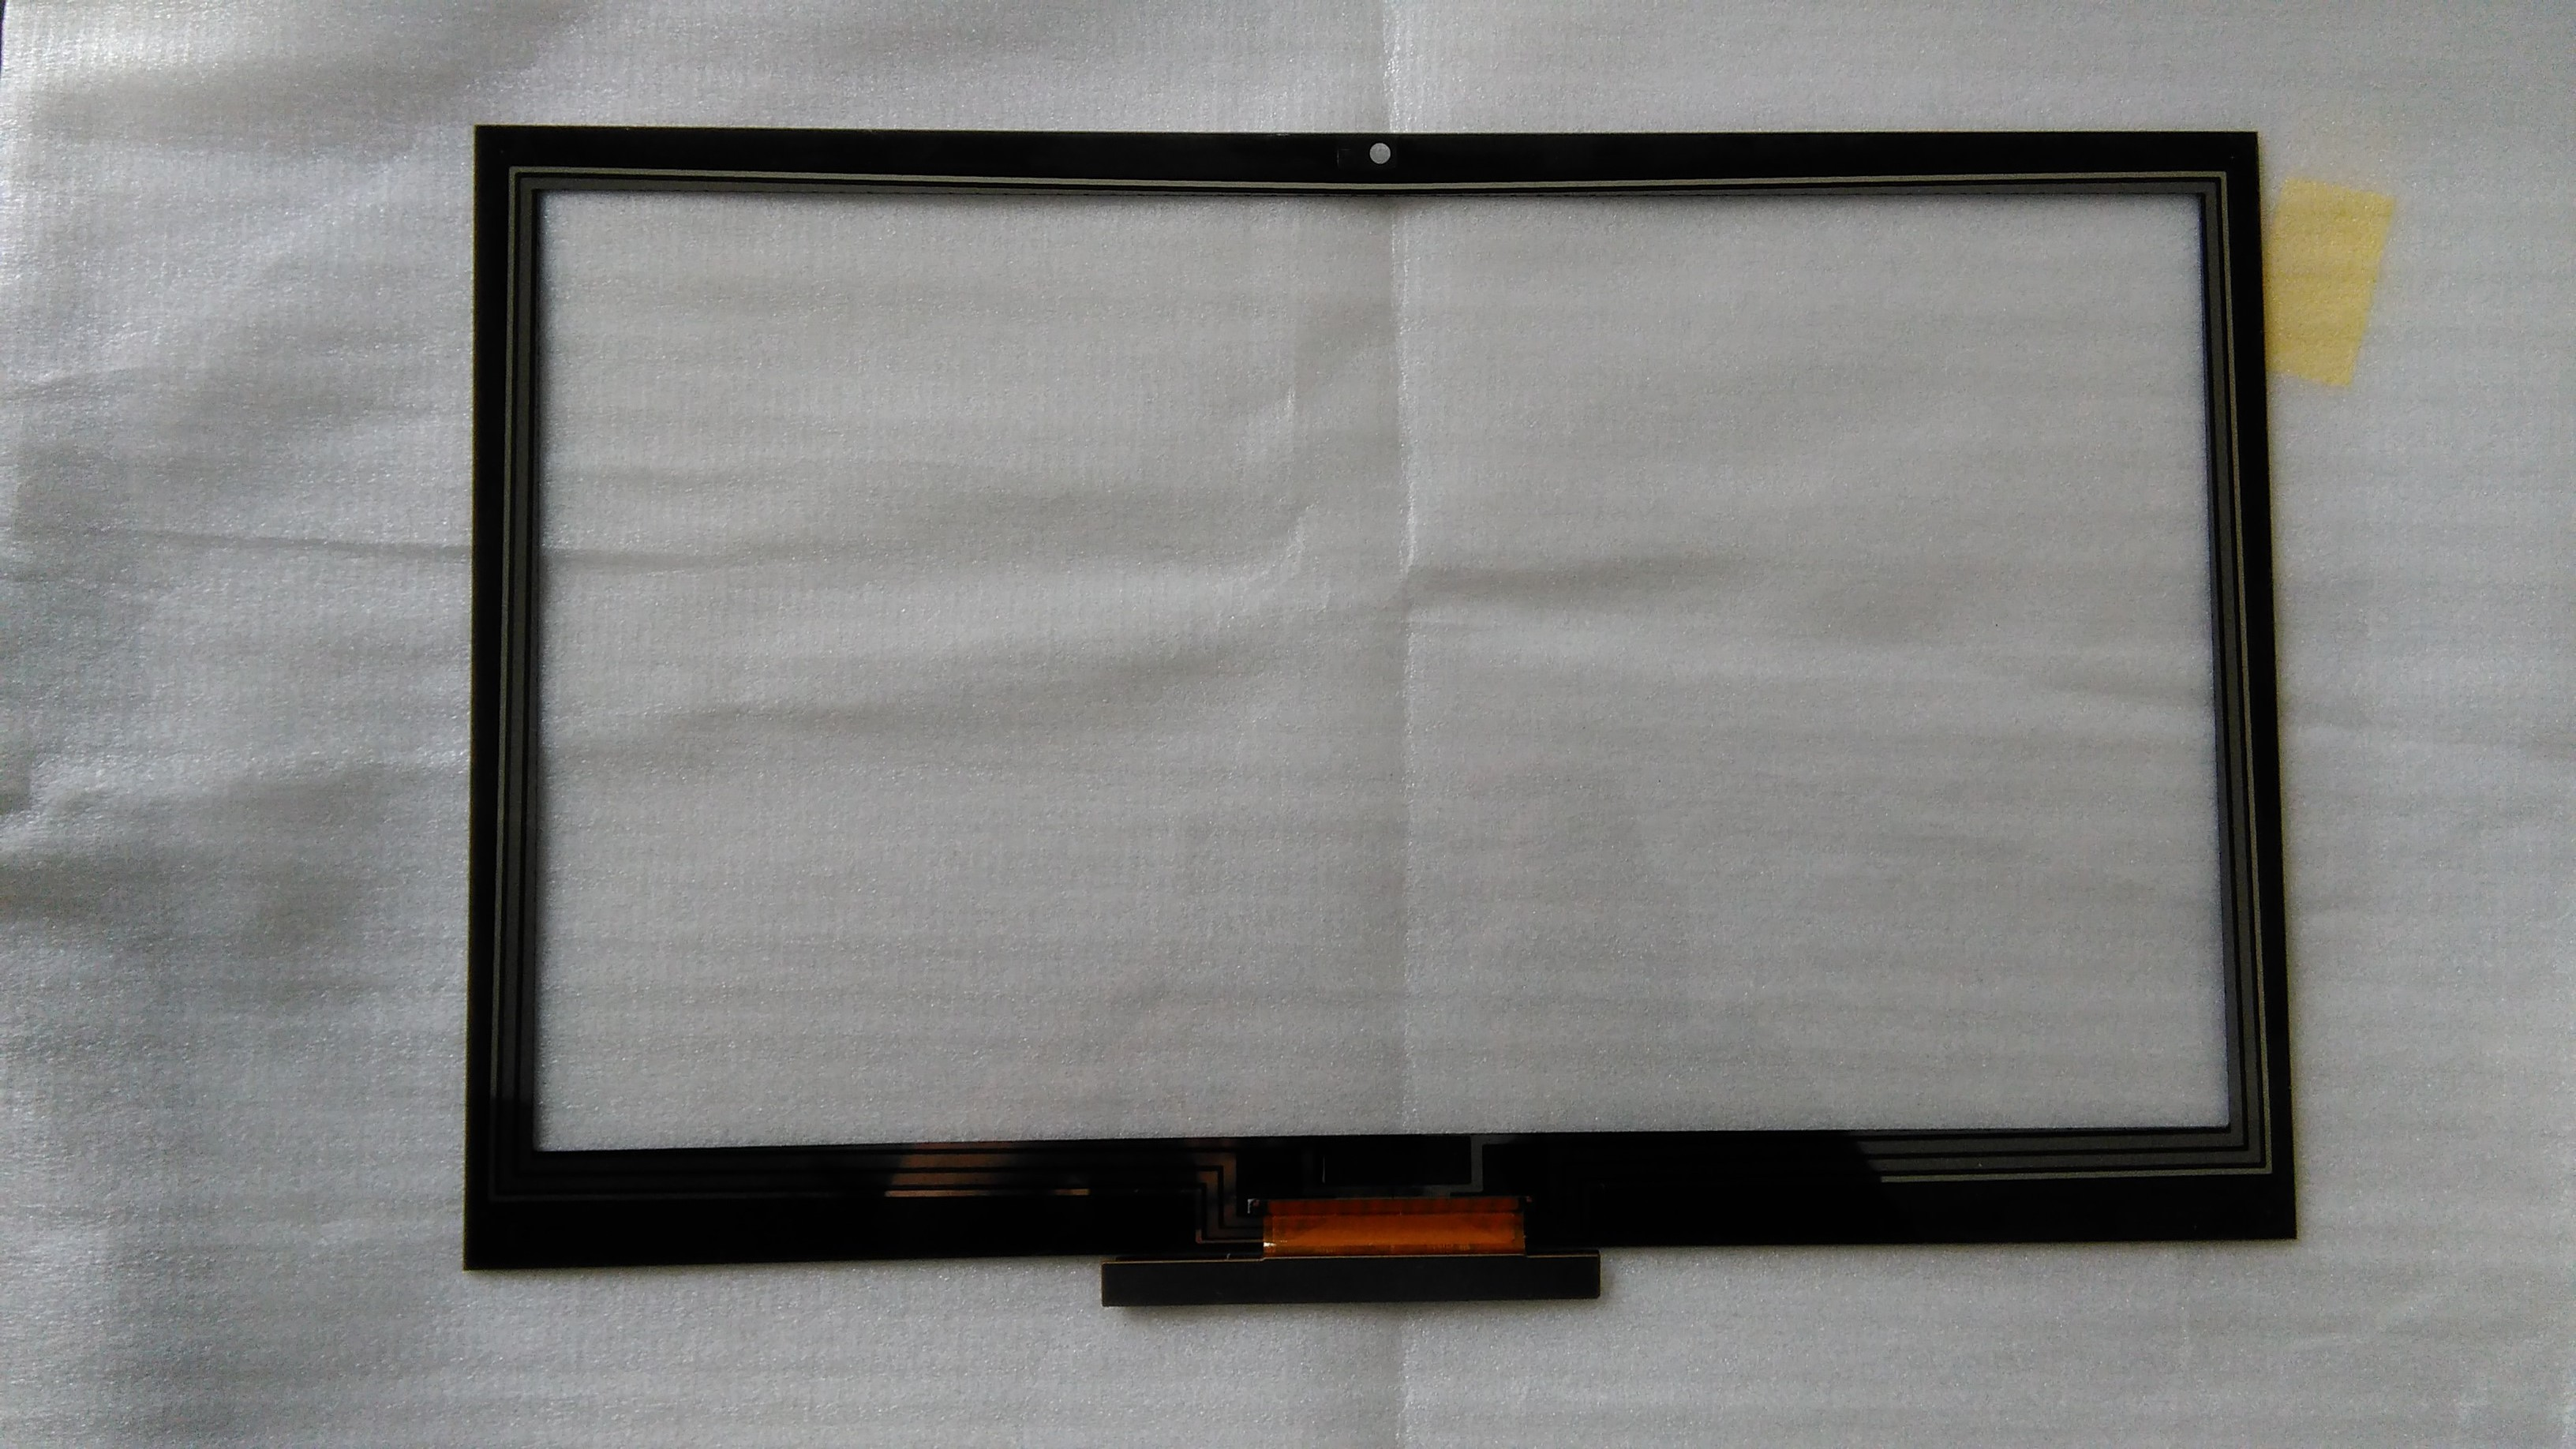 Laptop LCD Display Screen For SONY SVP13 SVP132 Touch Module Cover Assembly Black digitizer glass WX13F009G101